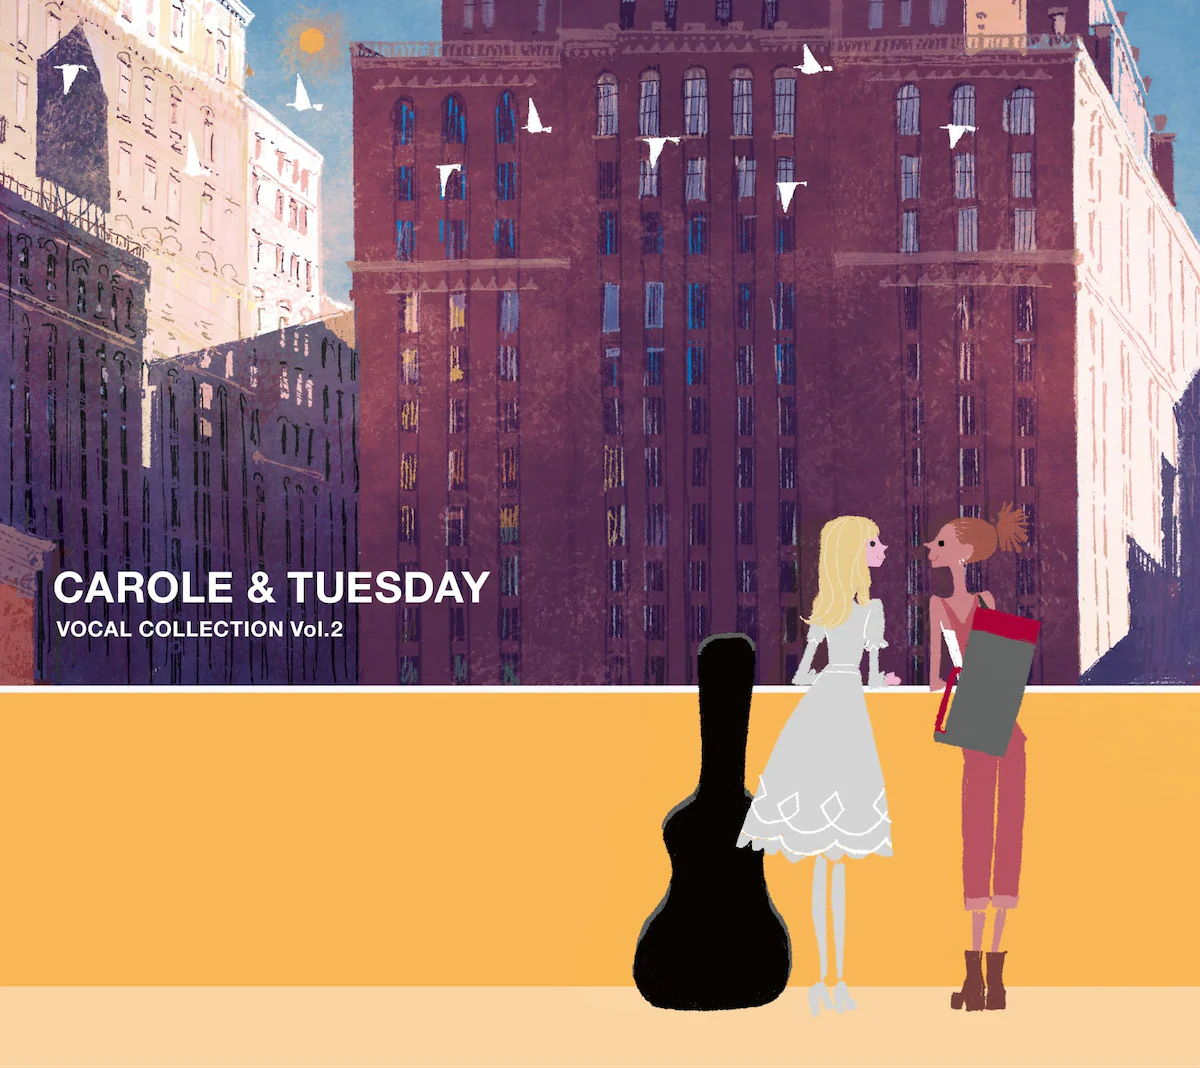 『VOICES FROM MARSMother』収録の『CAROLE & TUESDAY VOCAL COLLECTION Vol.2』ジャケット